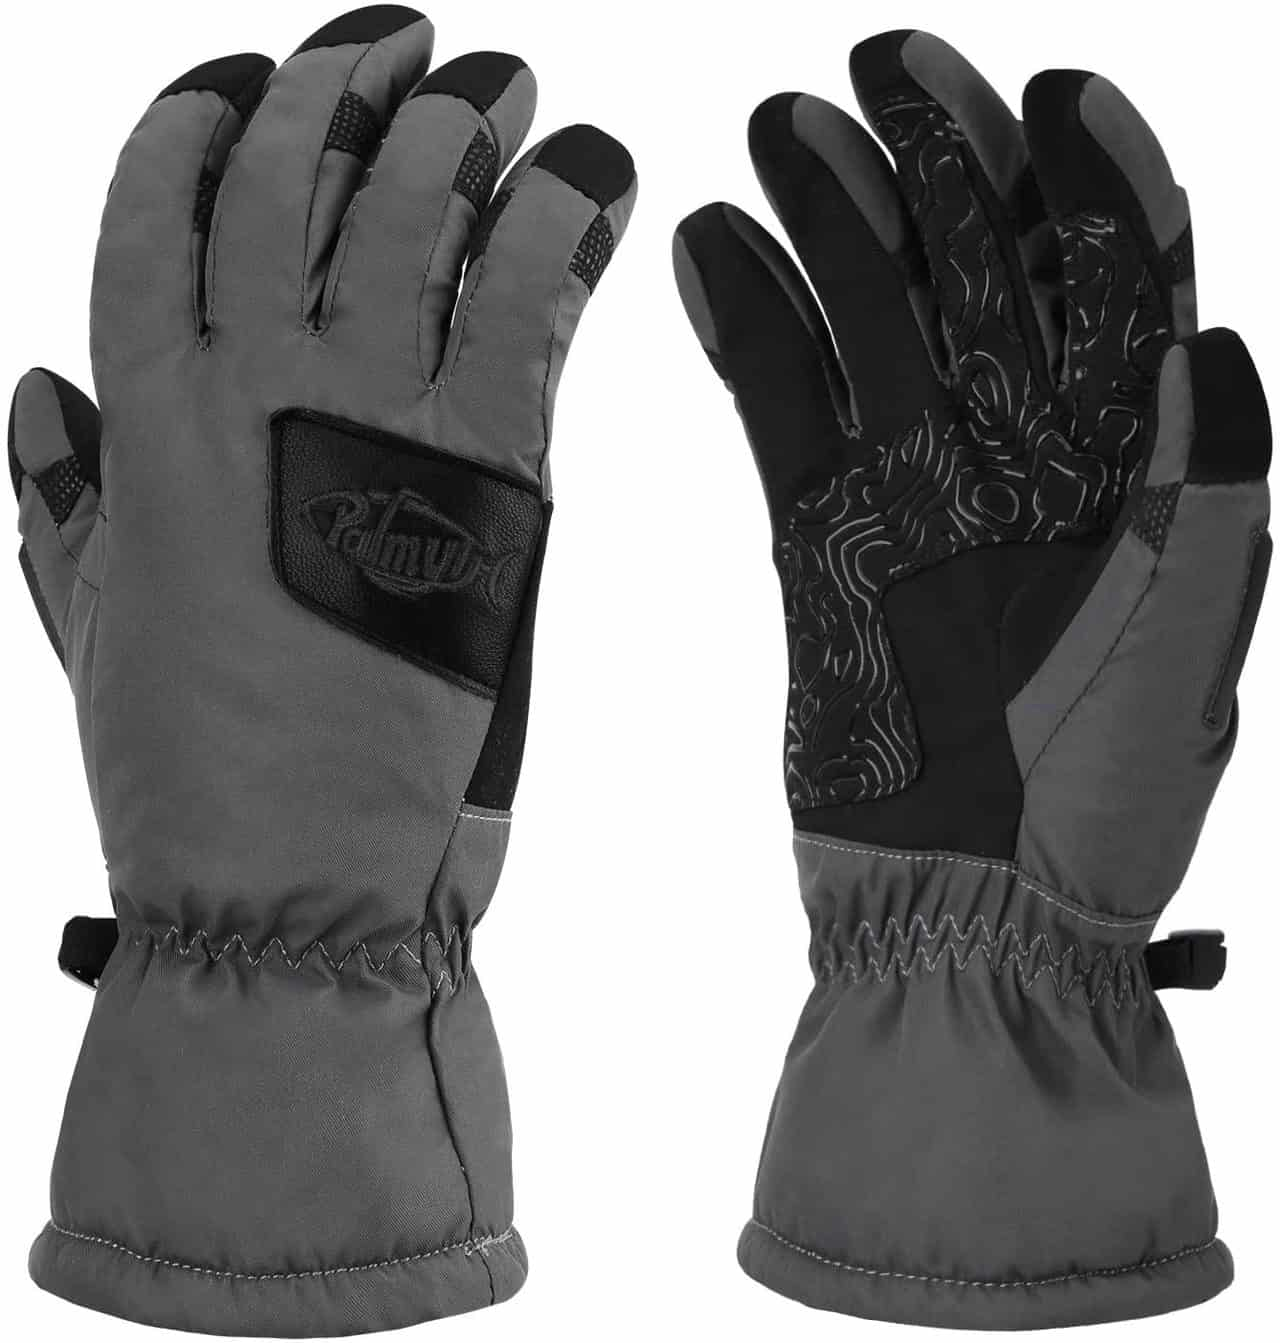 Waterproof Ice fishing gloves by Palmyth